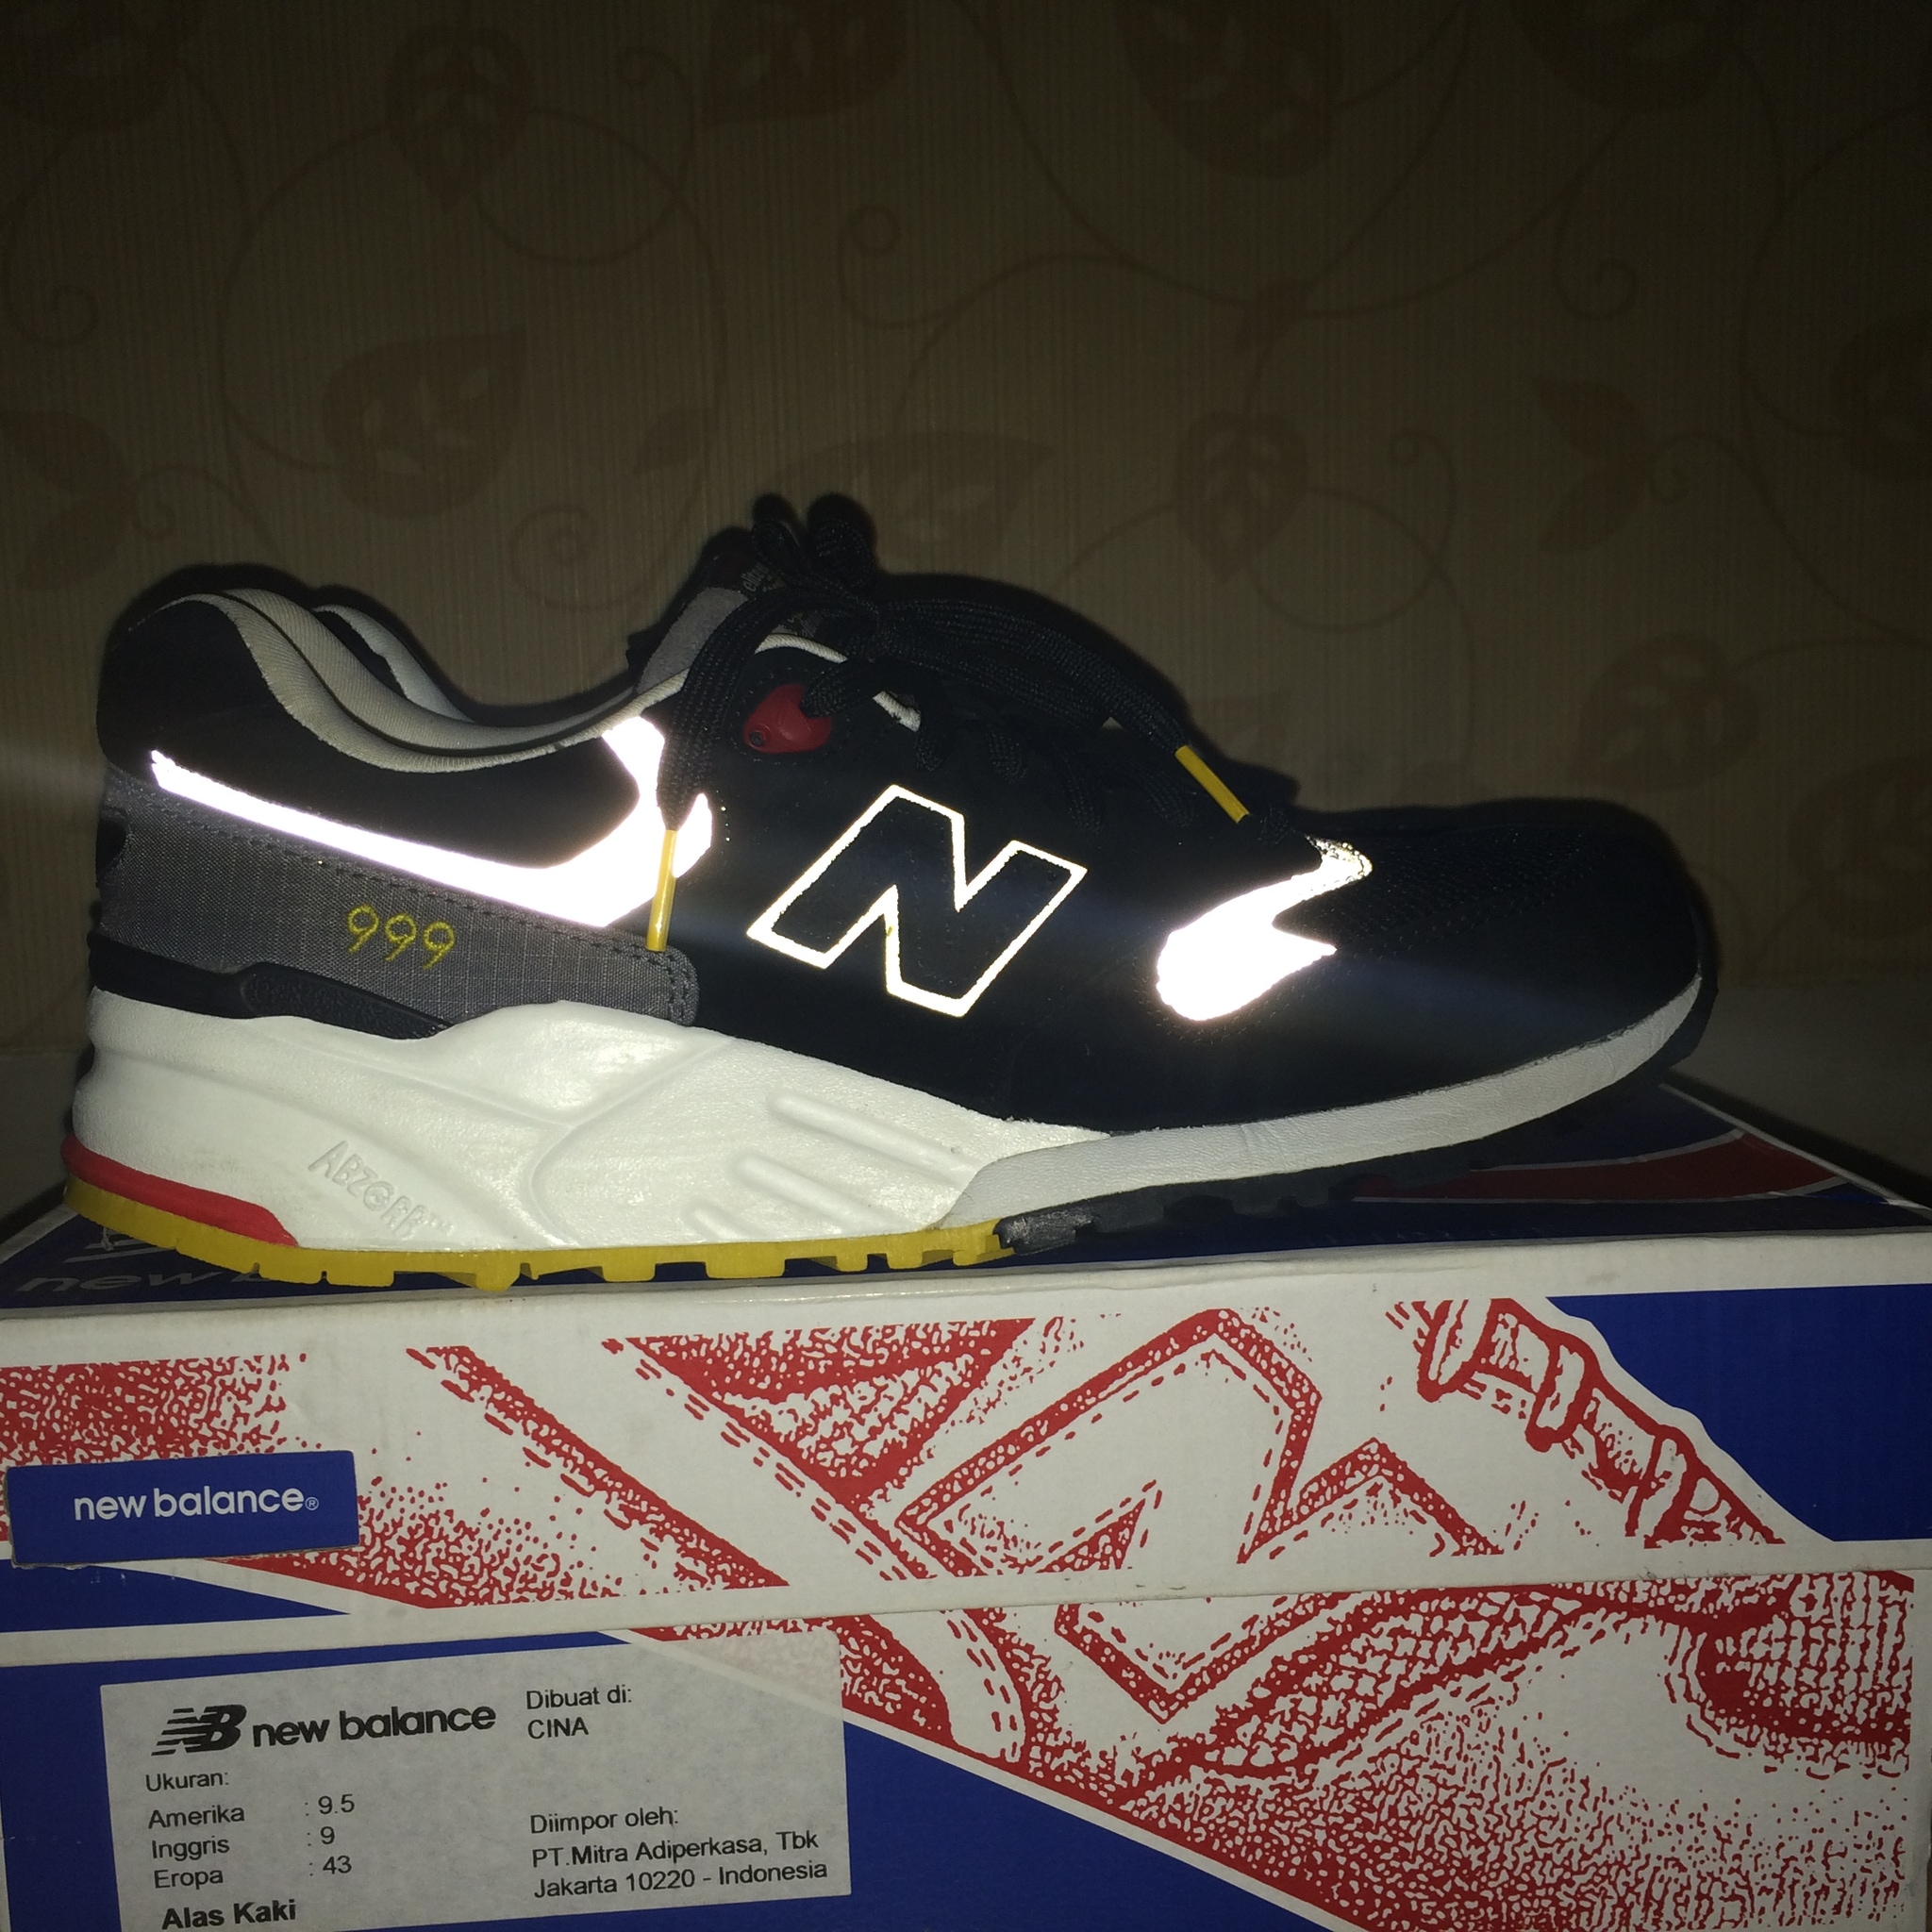 ... discount code for new balance 999 elite edition harga 36034 ddbe9 69b69434b4